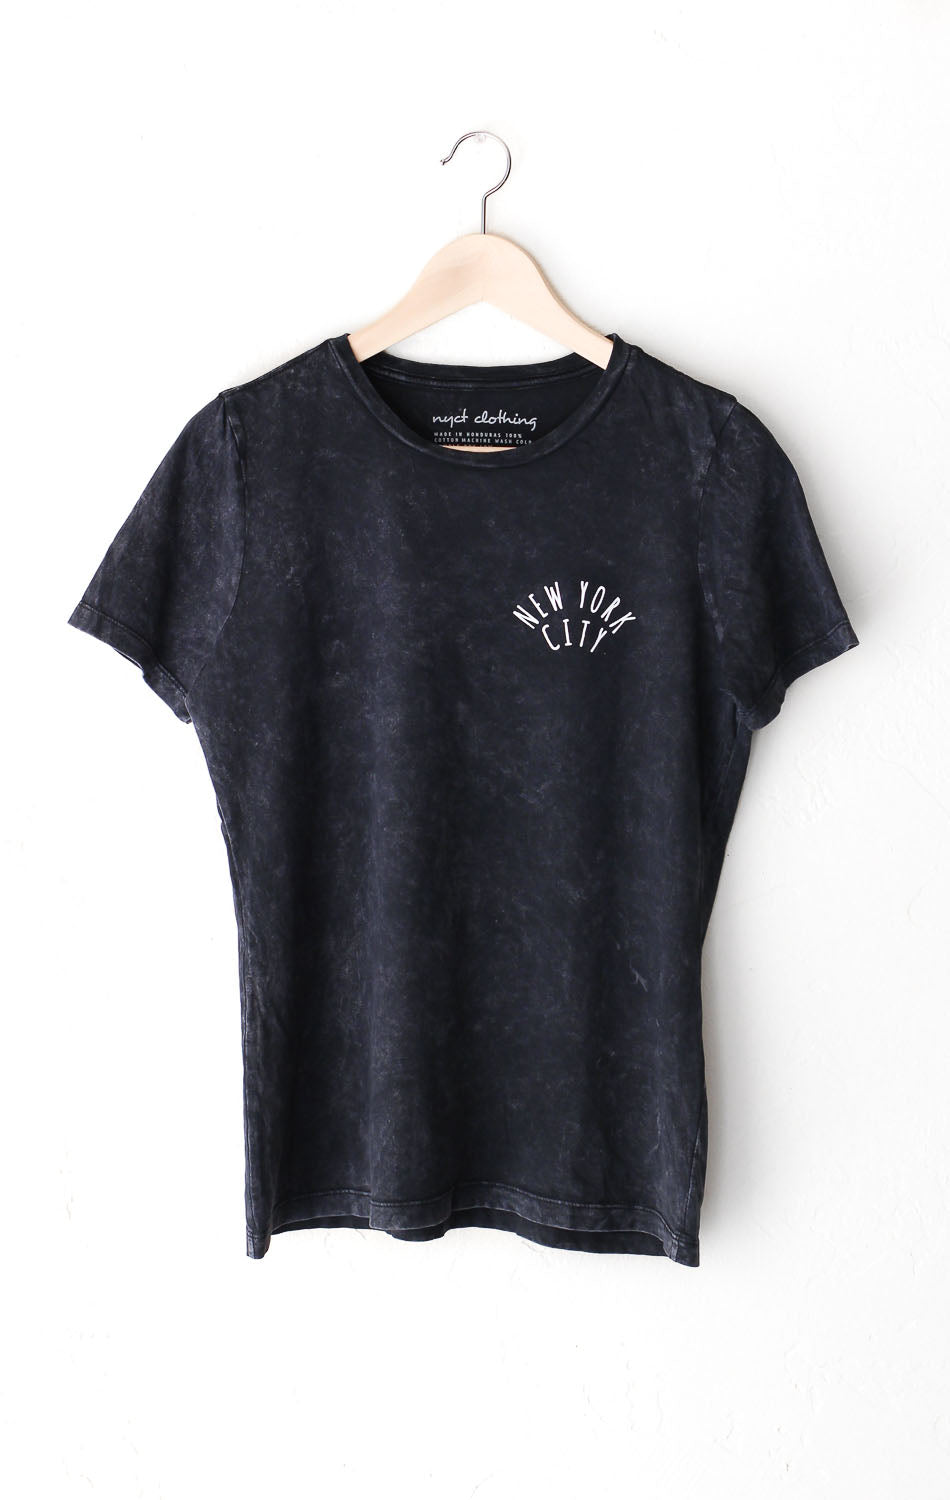 NYCT Clothing New York City Relaxed Tee - Acid Wash Black